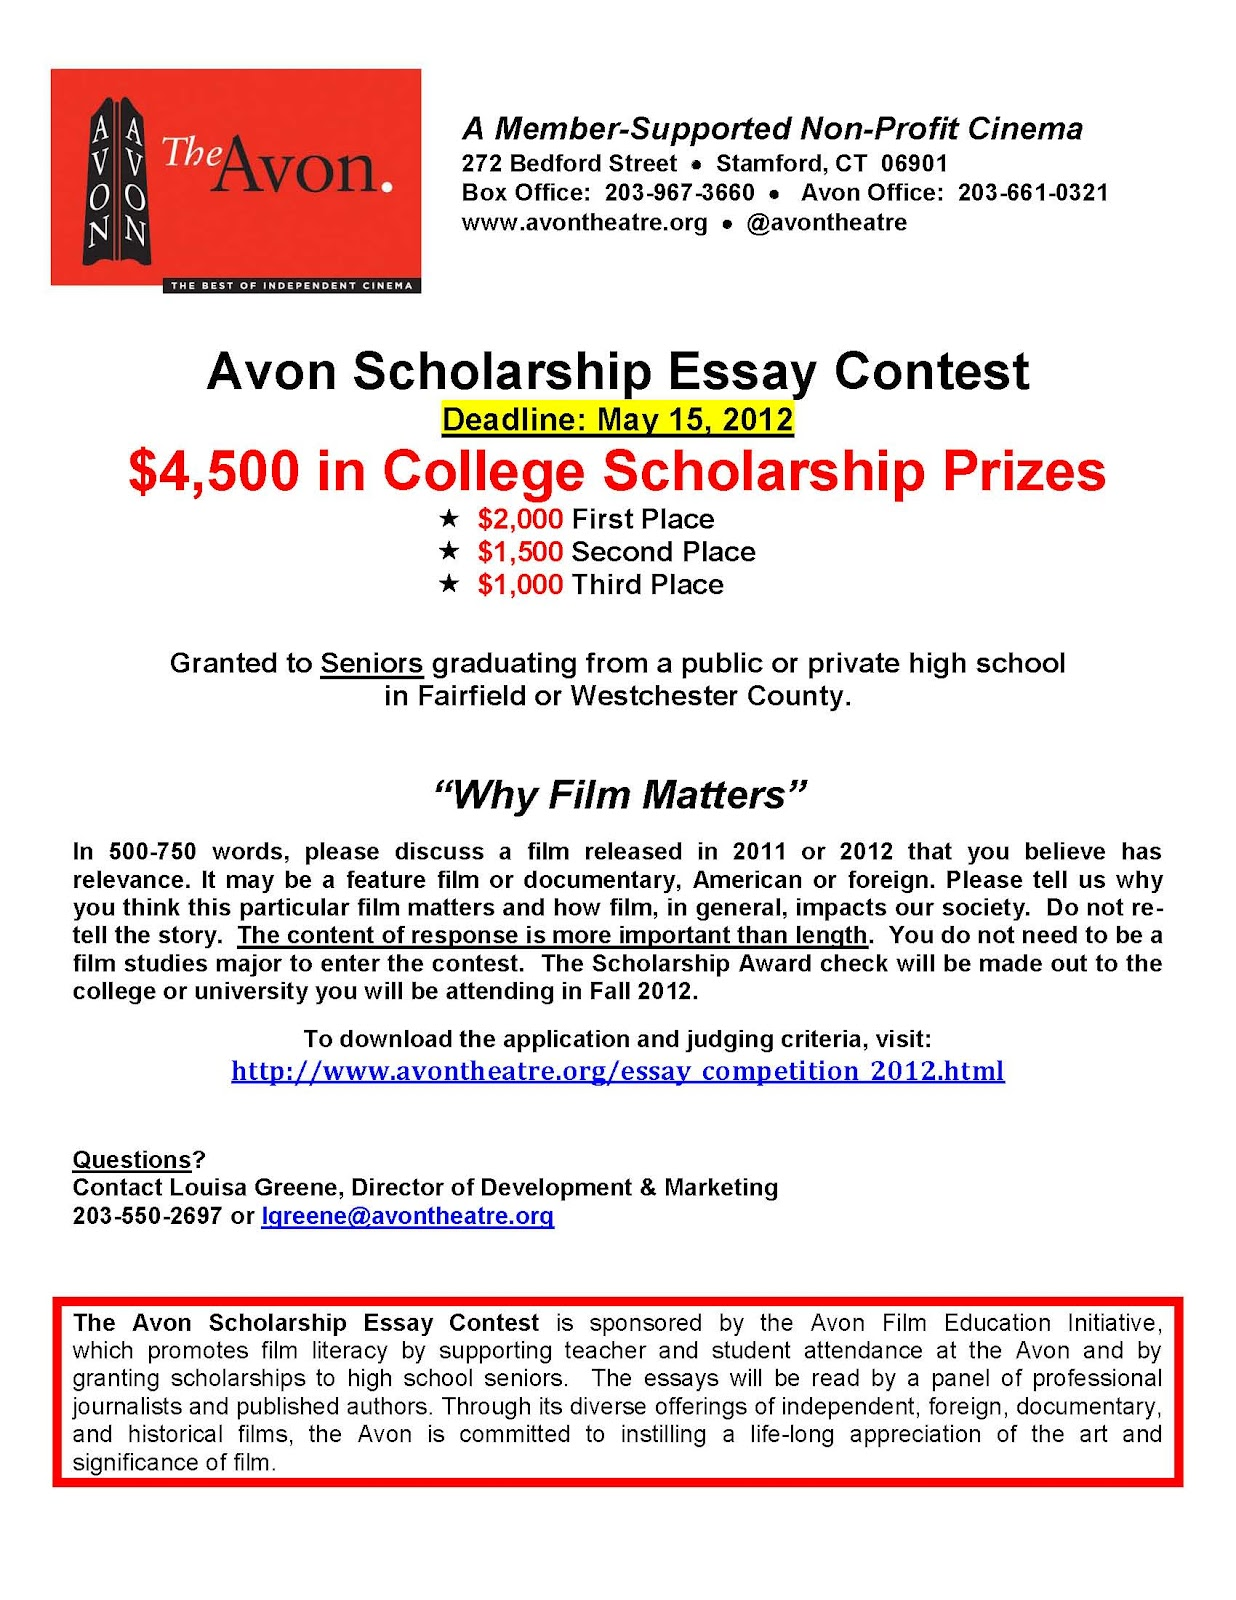 004 Scholarship Essay Contest Avonscholarshipessaycontest2012flyer Astounding Contests For High School Students 2019 Middle Full